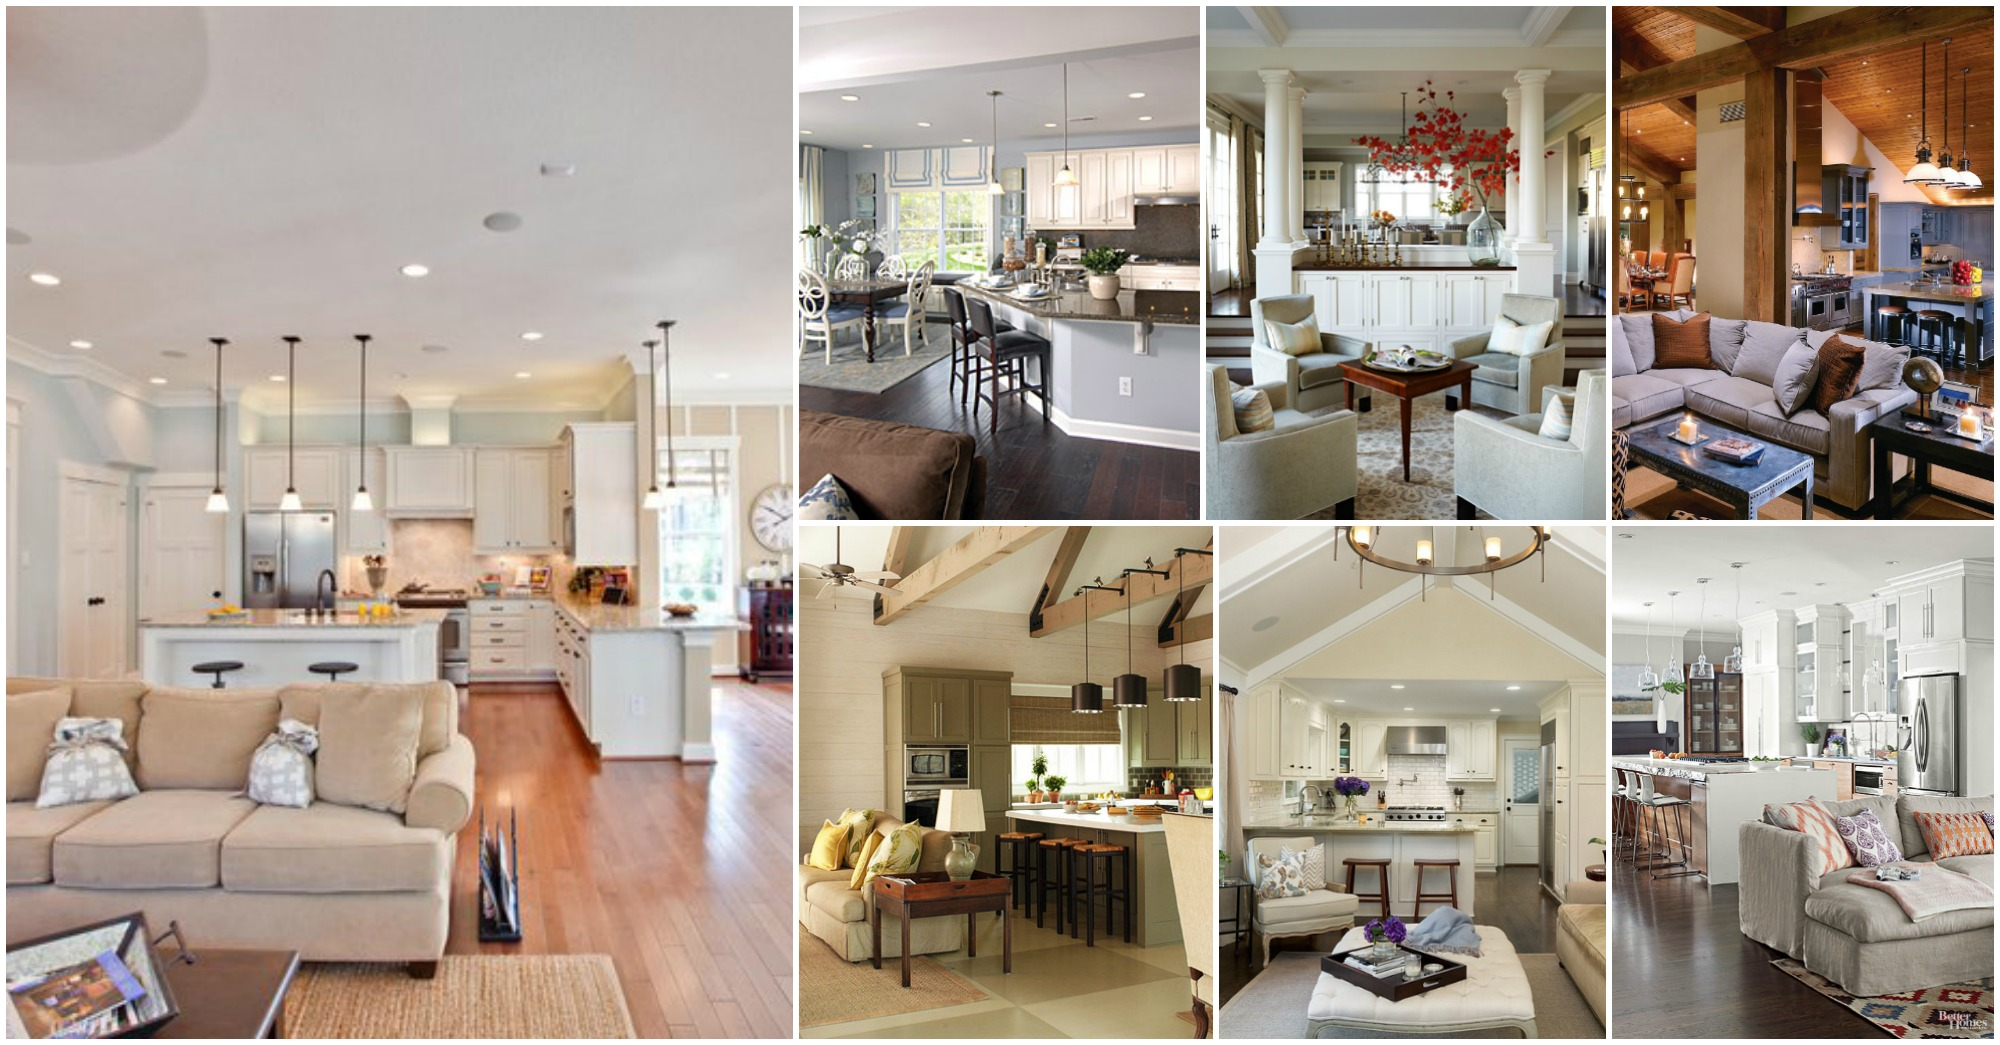 Impressive Open Kitchen – Living Room Designs That Will Blow Your Mind